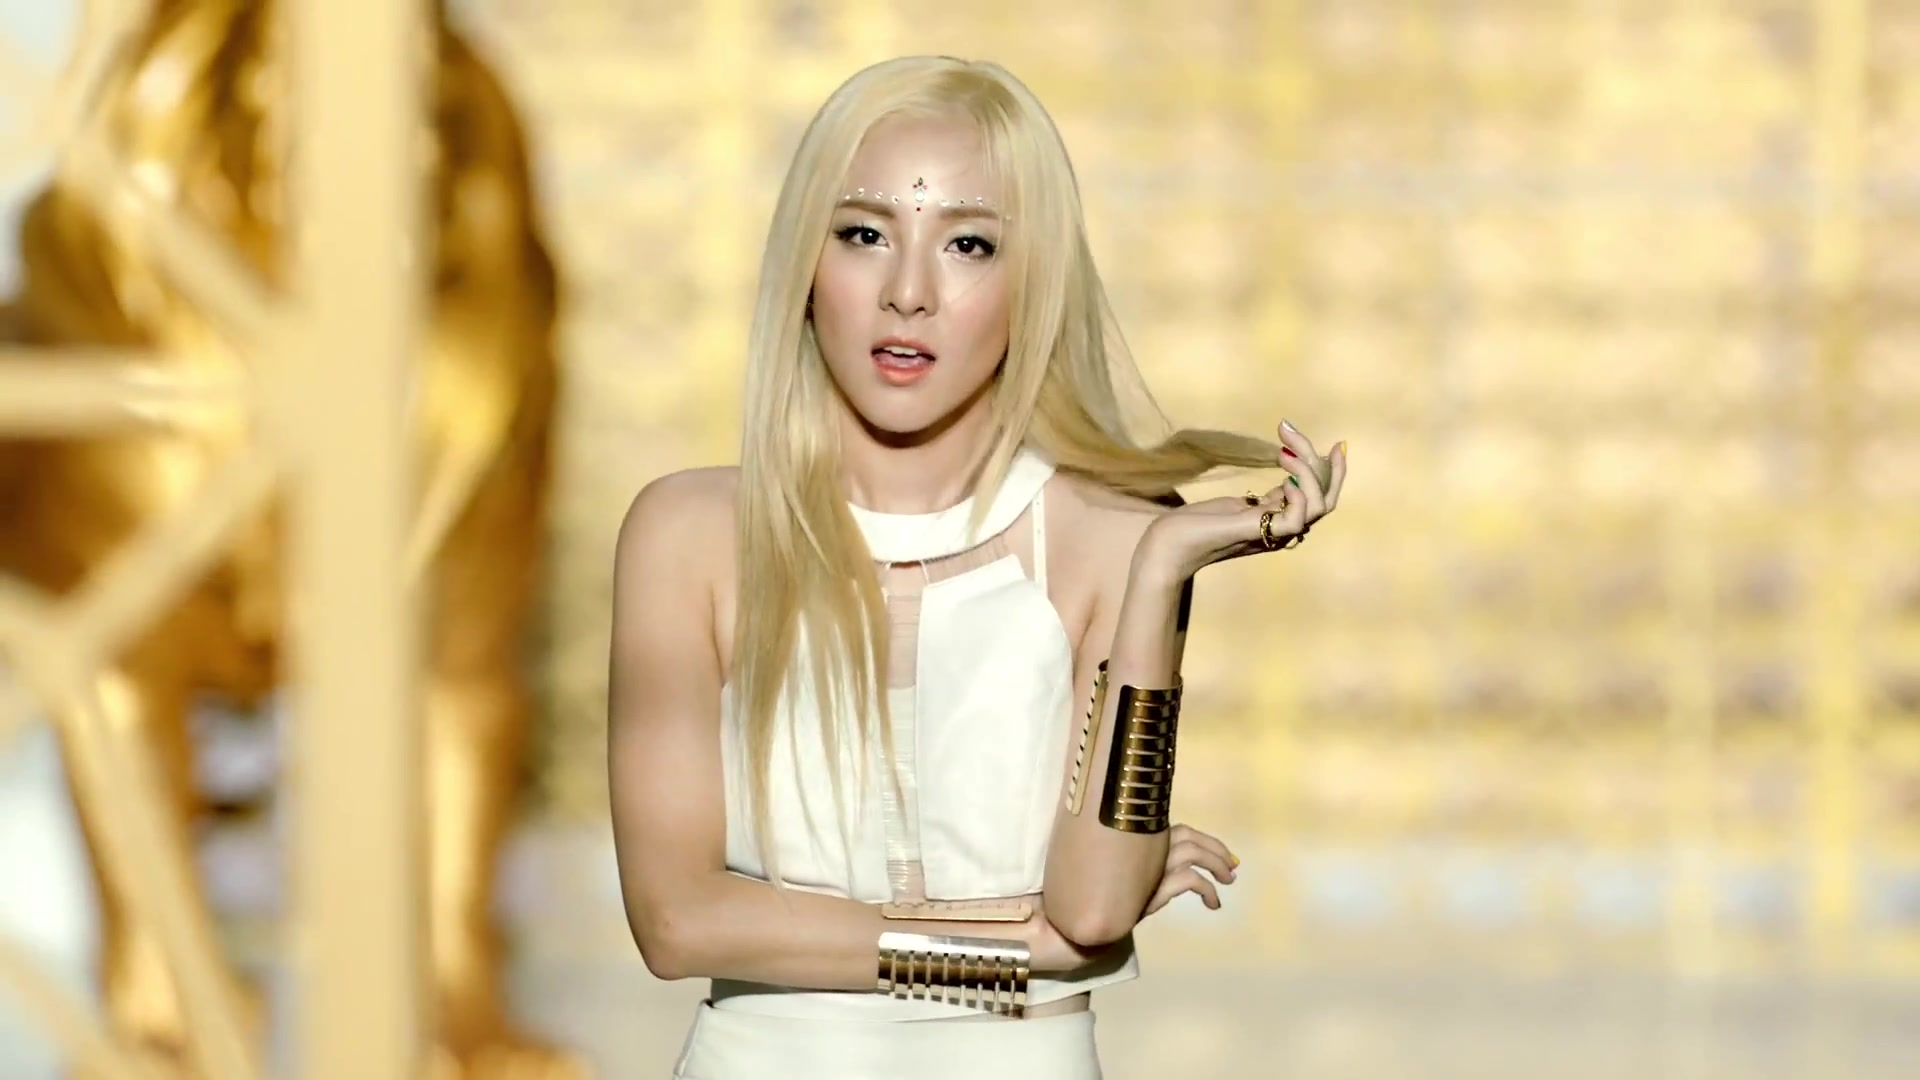 dara park dating ban Park sandara became  after being freed from the love-dating ban contract that the agency put on them within three years after debut,.